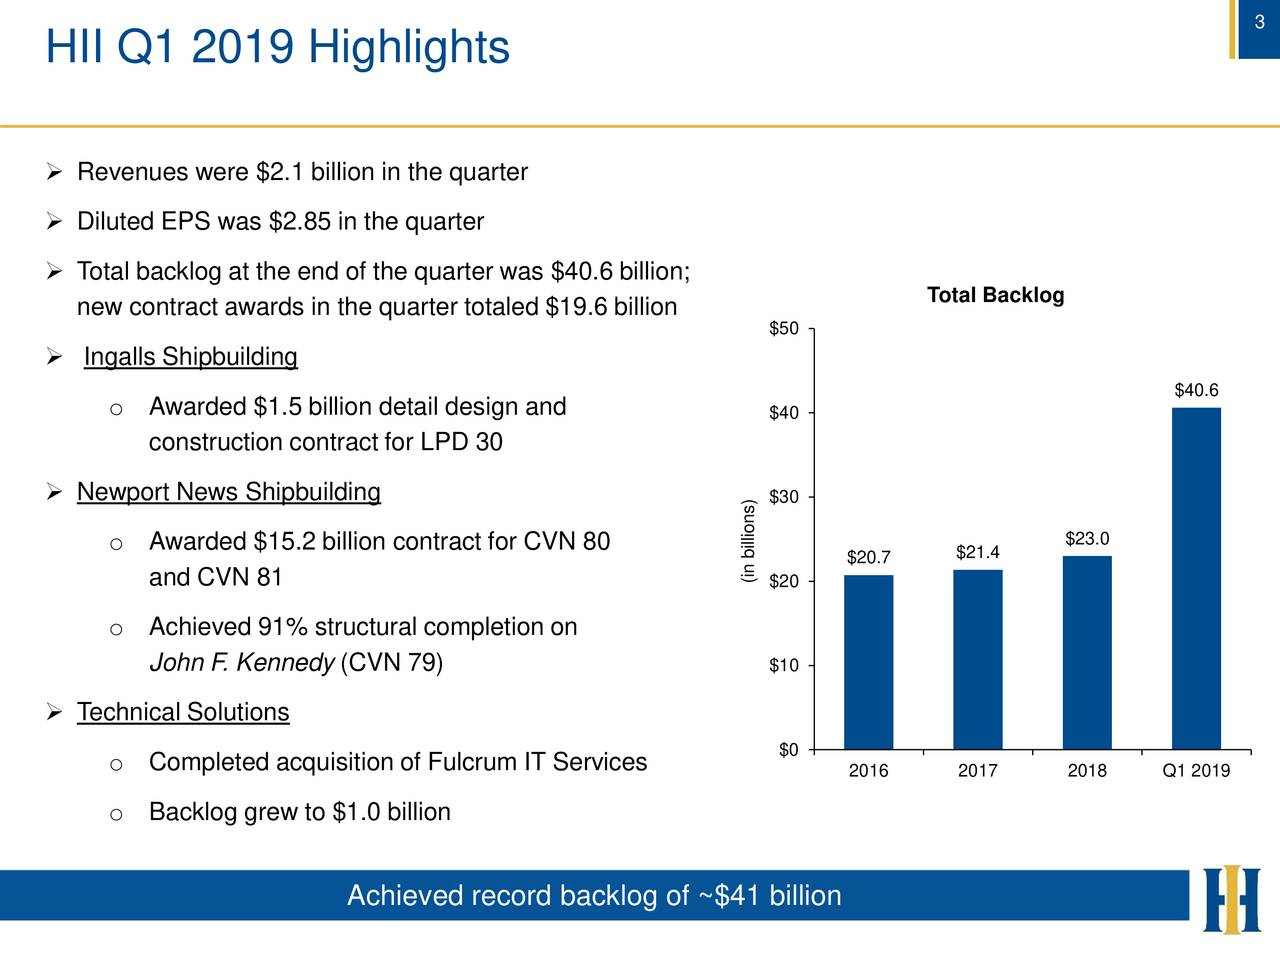 HII Q1 2019 Highlights  Revenues were $2.1 billion in the quarter  Diluted EPS was $2.85 in the quarter  Total backlog at the end of the quarter was $40.6 billion; new contract awards in the quarter totaled $19.6 billion Total Backlog $50  Ingalls Shipbuilding $40.6 o Awarded $1.5 billion detail design and $40 construction contract for LPD 30  Newport News Shipbuilding $30 o Awarded $15.2 billion contract for CVN 80 $23.0 $20.7 $21.4 and CVN 81 (i$20illions) o Achieved 91% structural completion on John F. Kennedy (CVN 79) $10  Technical Solutions o Completed acquisition of Fulcrum IT Services $0 2016 2017 2018 Q1 2019 o Backlog grew to $1.0 billion Achieved record backlog of ~$41 billion